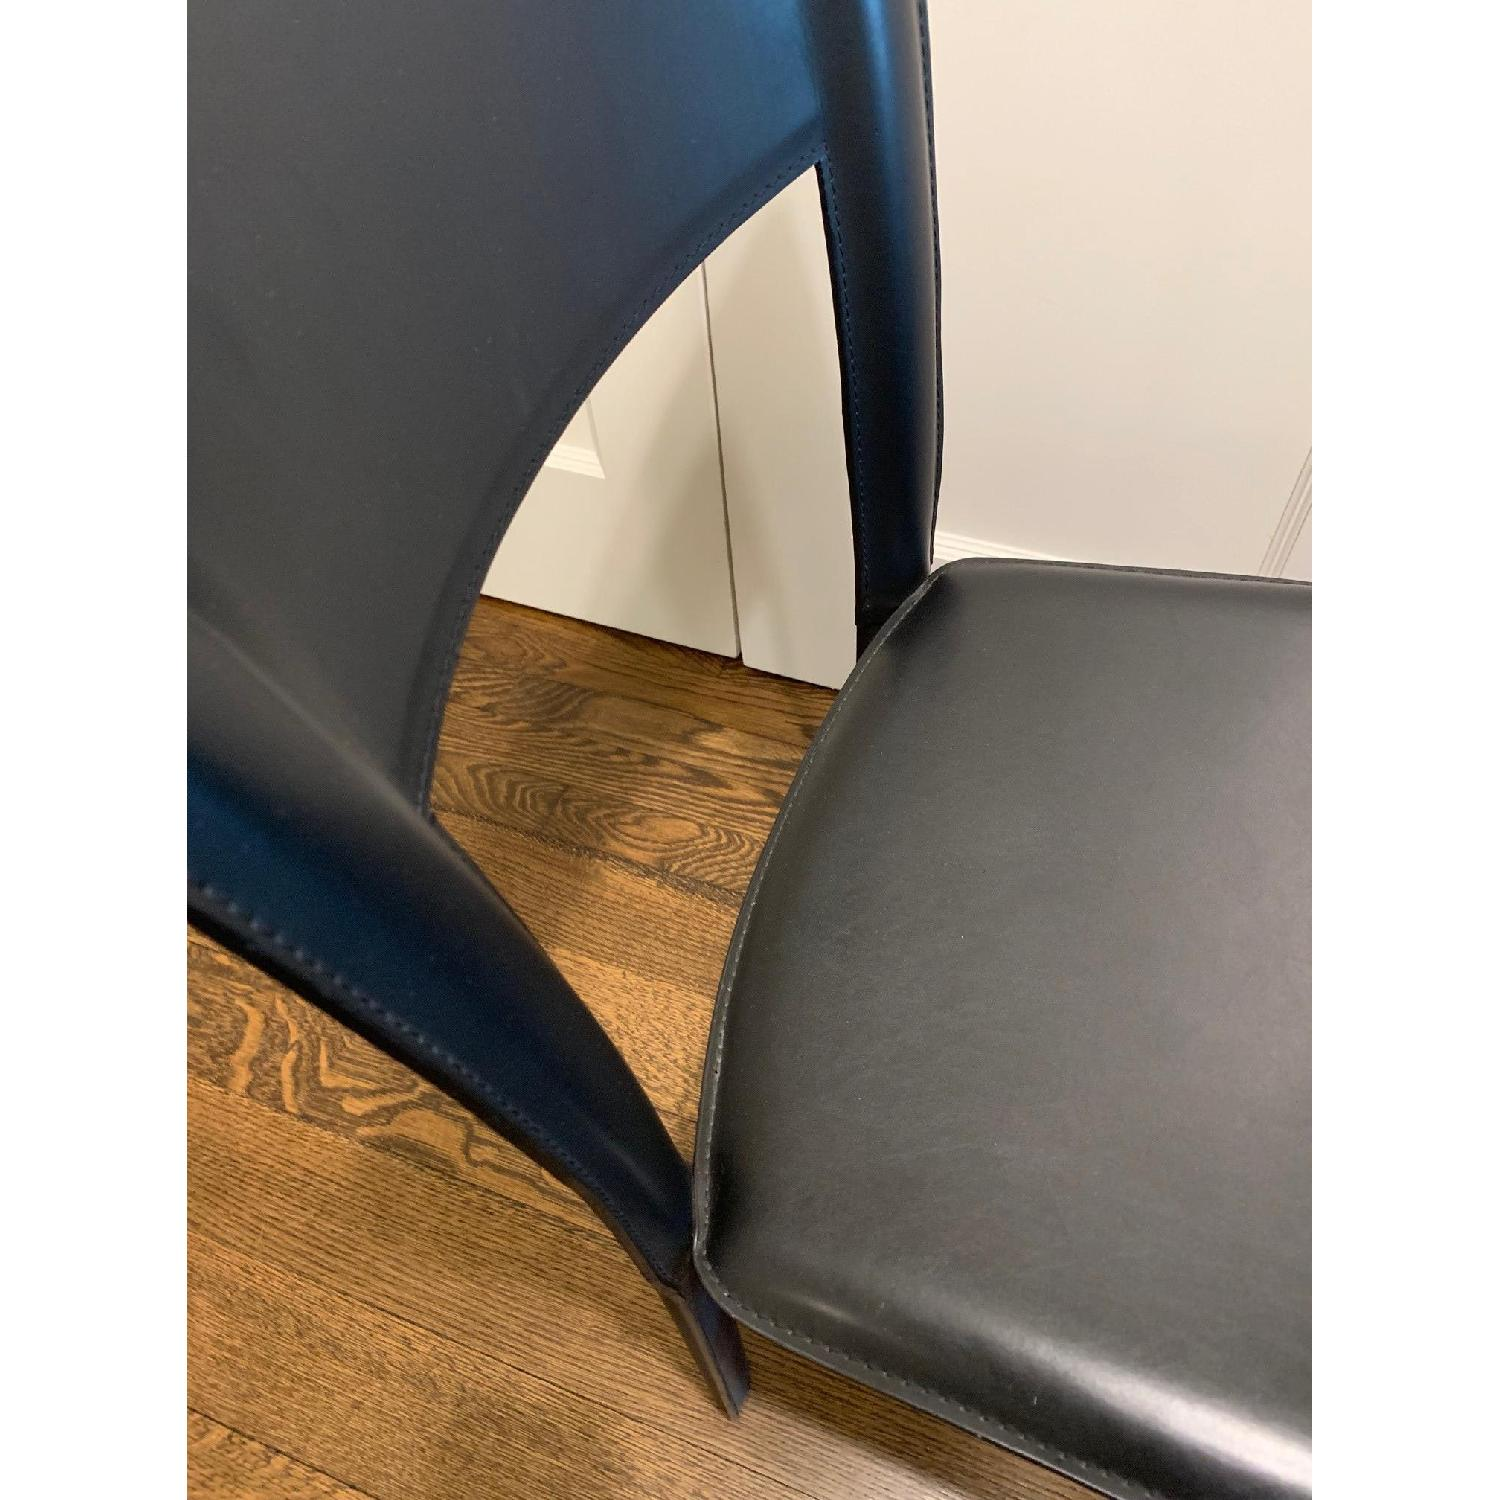 Room & Board Black Leather Dining Chairs-4